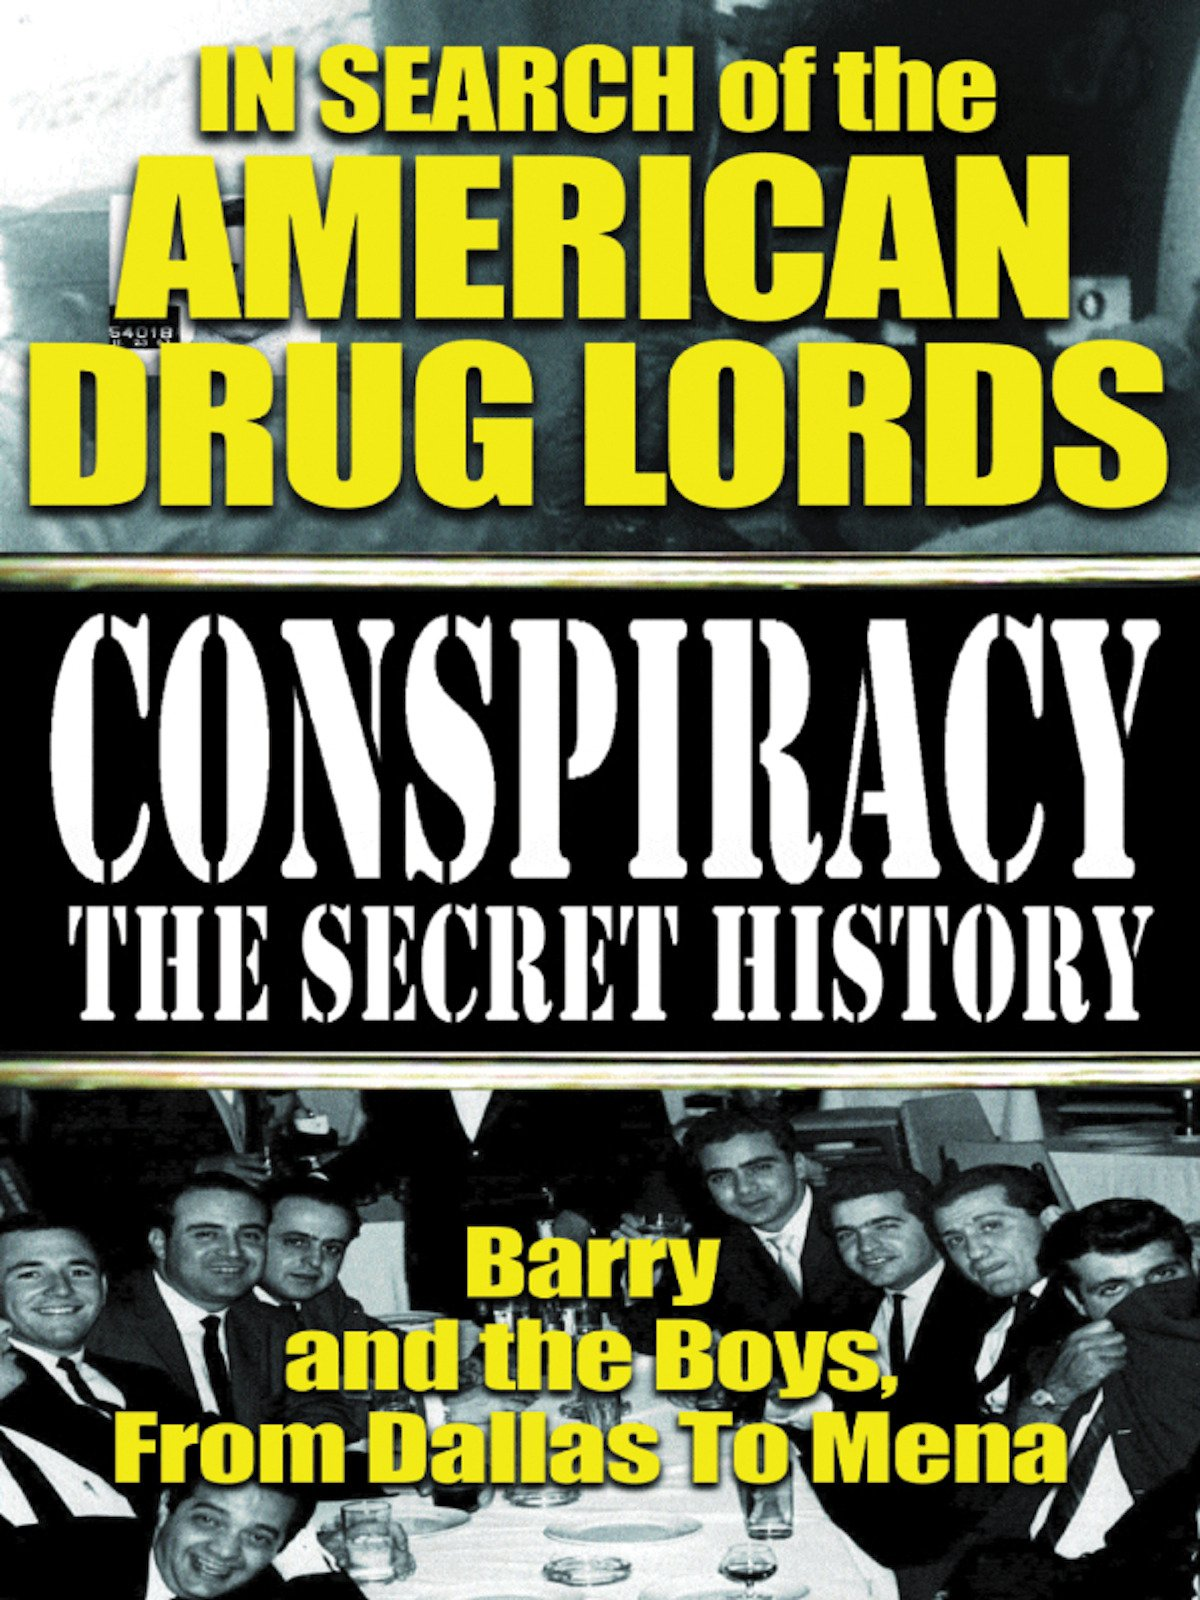 Conspiracy the Secret History: In Search of the American Drug Lords